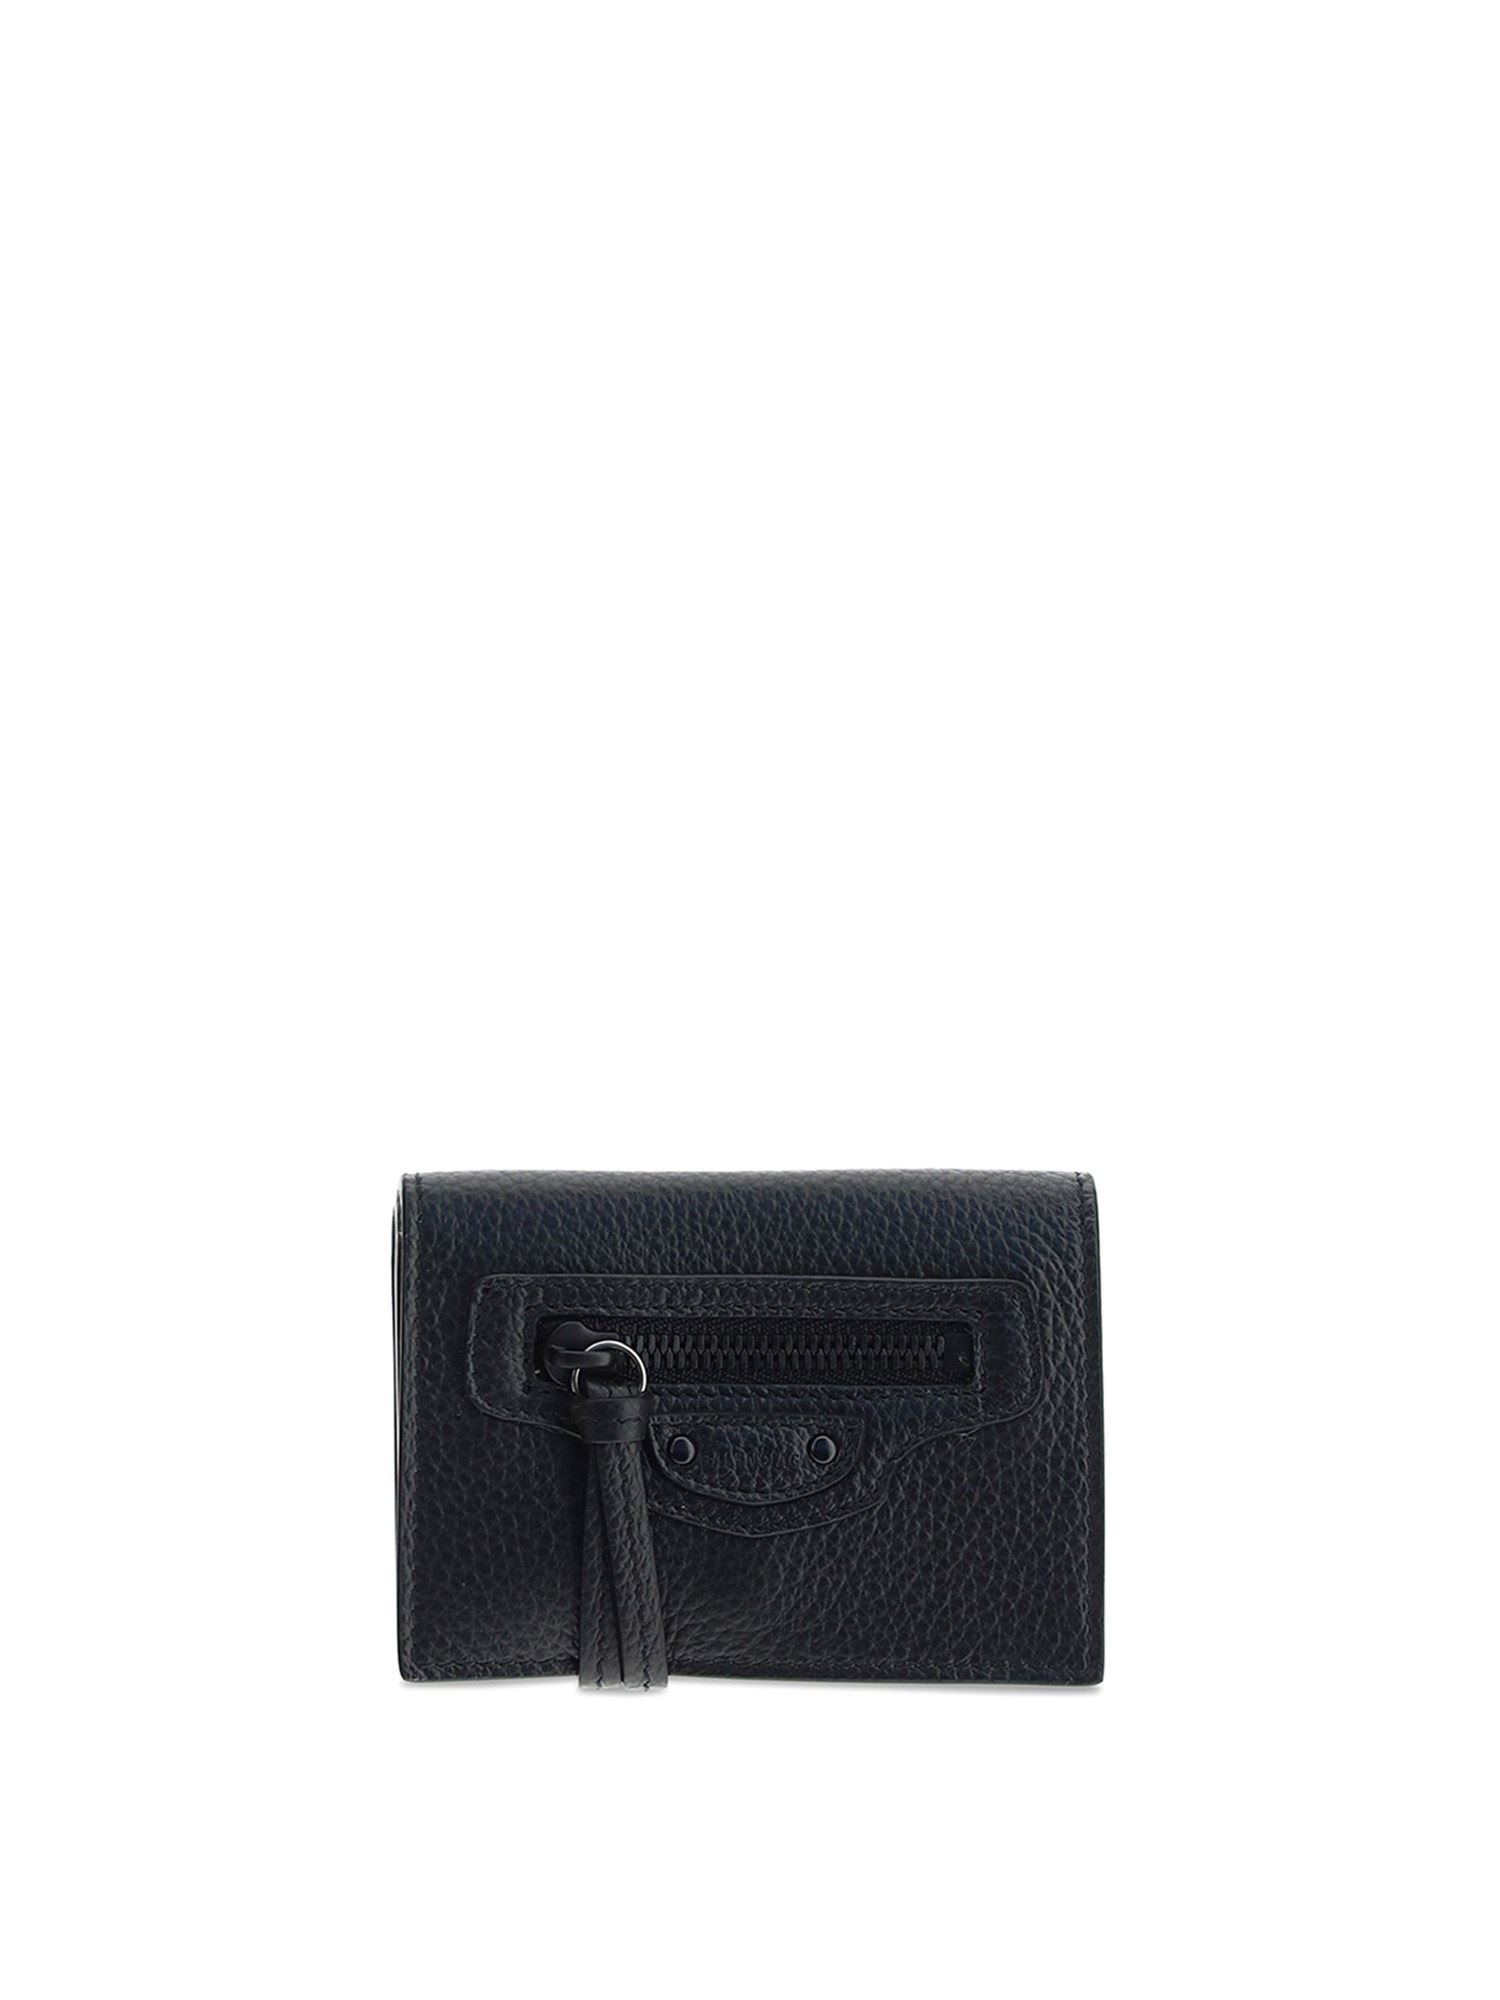 Balenciaga Wallets HAMMERED LEATHER TRIFOLD WALLET IN BLACK